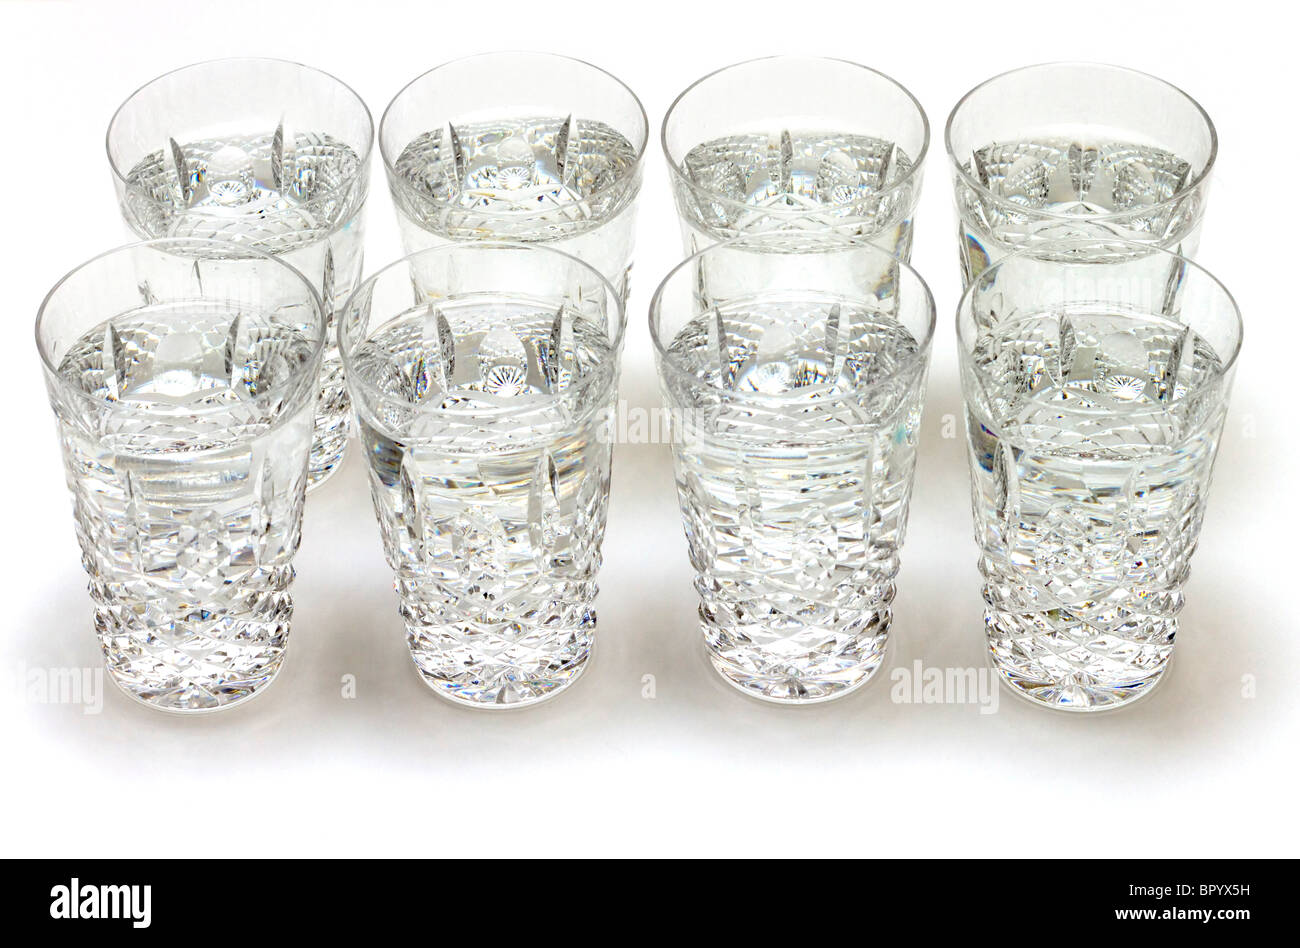 Eight glasses of water - Stock Image